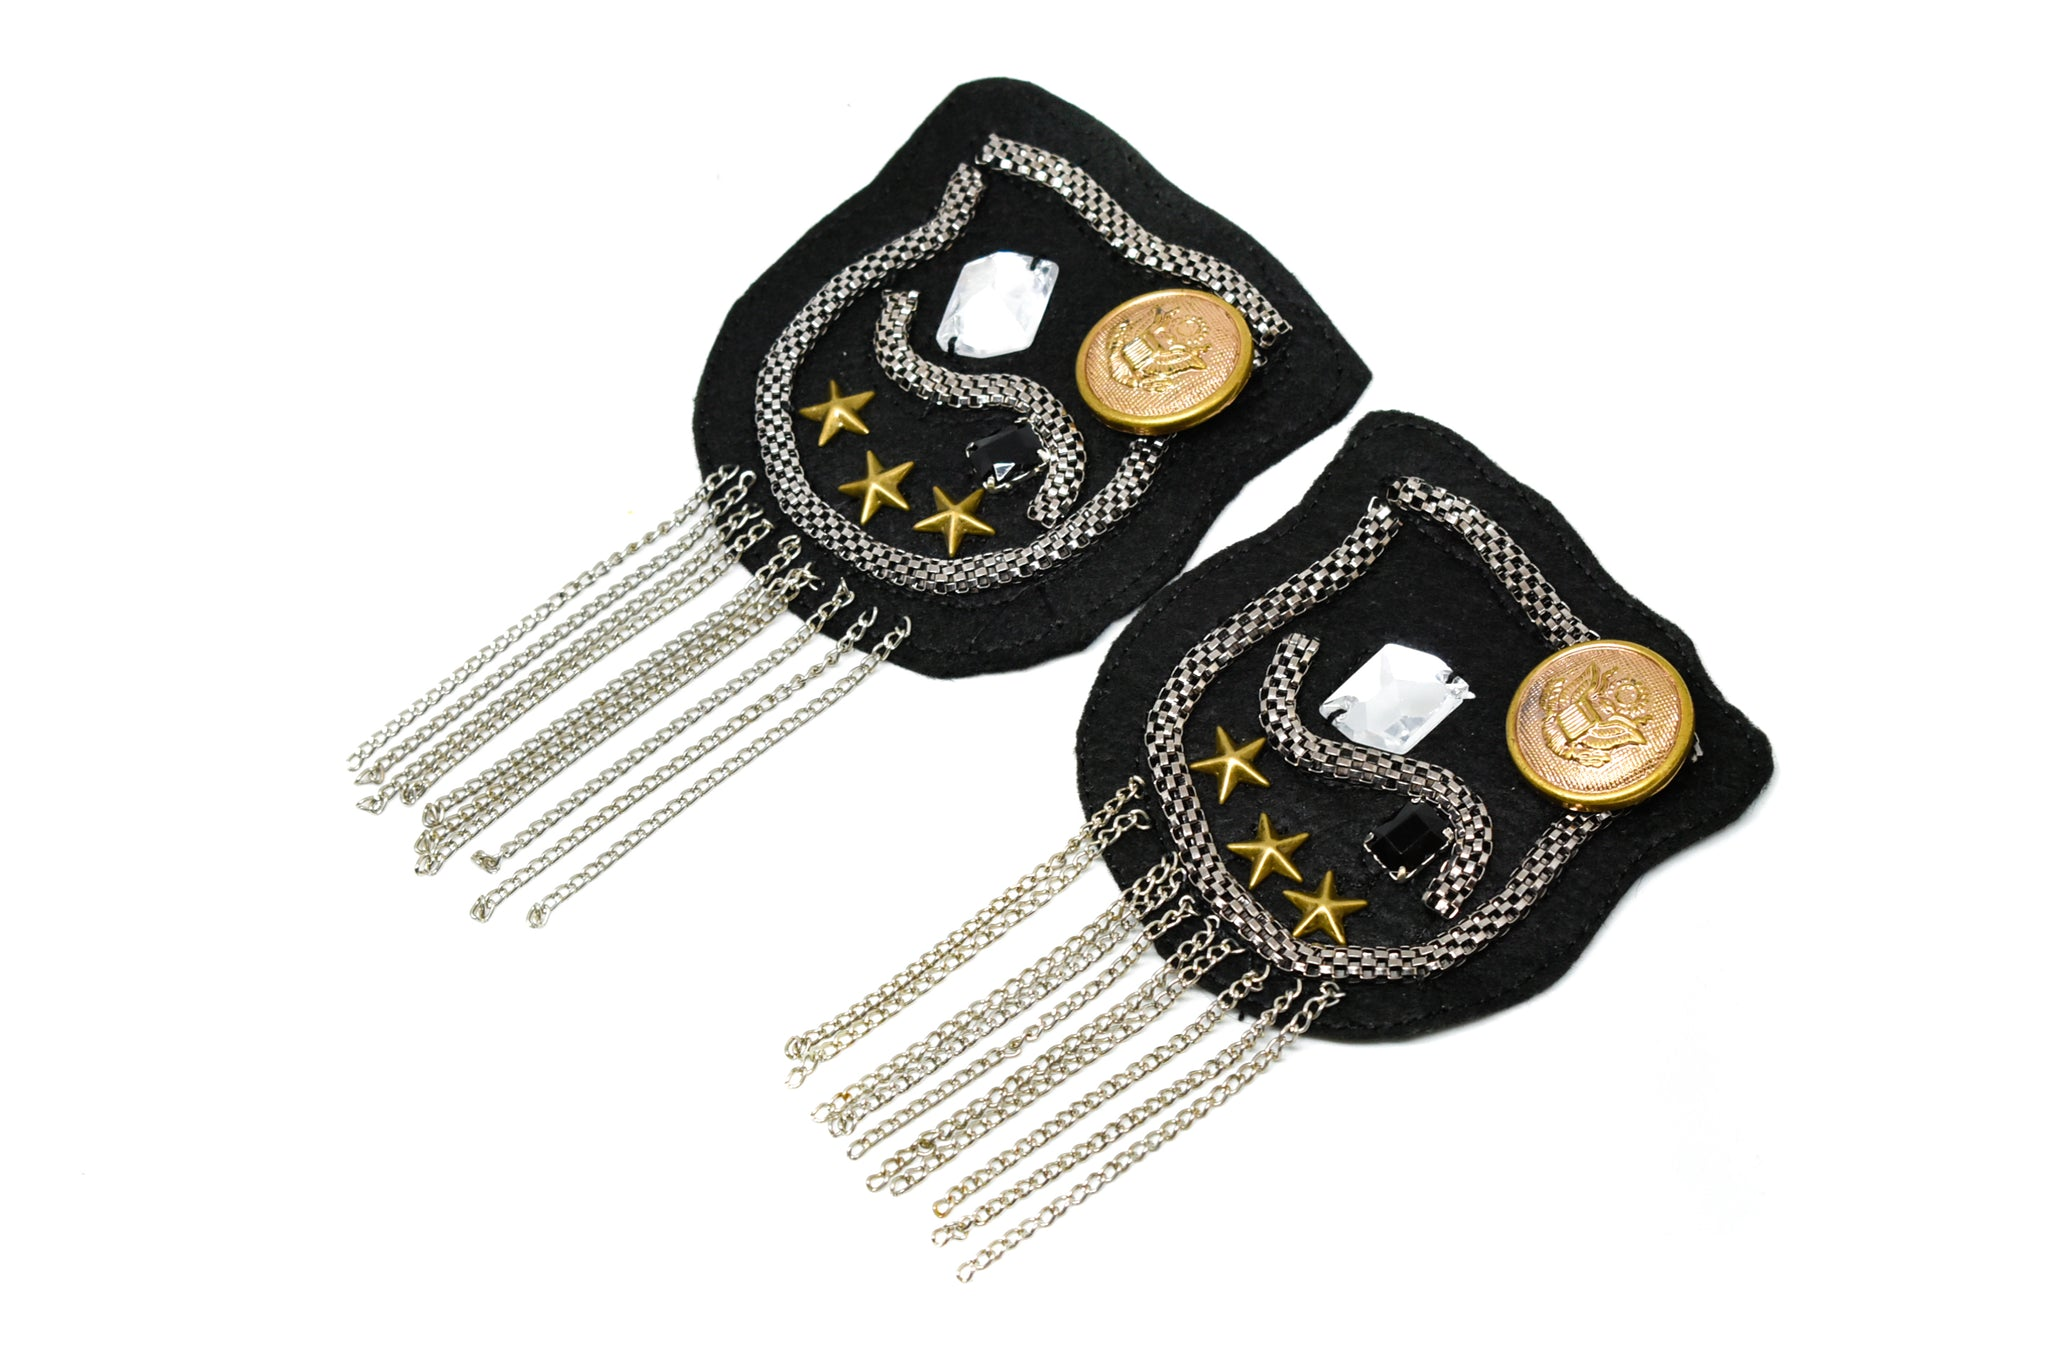 Pair (2 Pieces) Rhinestone and Studded Shoulder Pads with Tassel- DIY Accessory Festival Epaulets- Shoulder Piece Applique- Shoulder Pad Piece